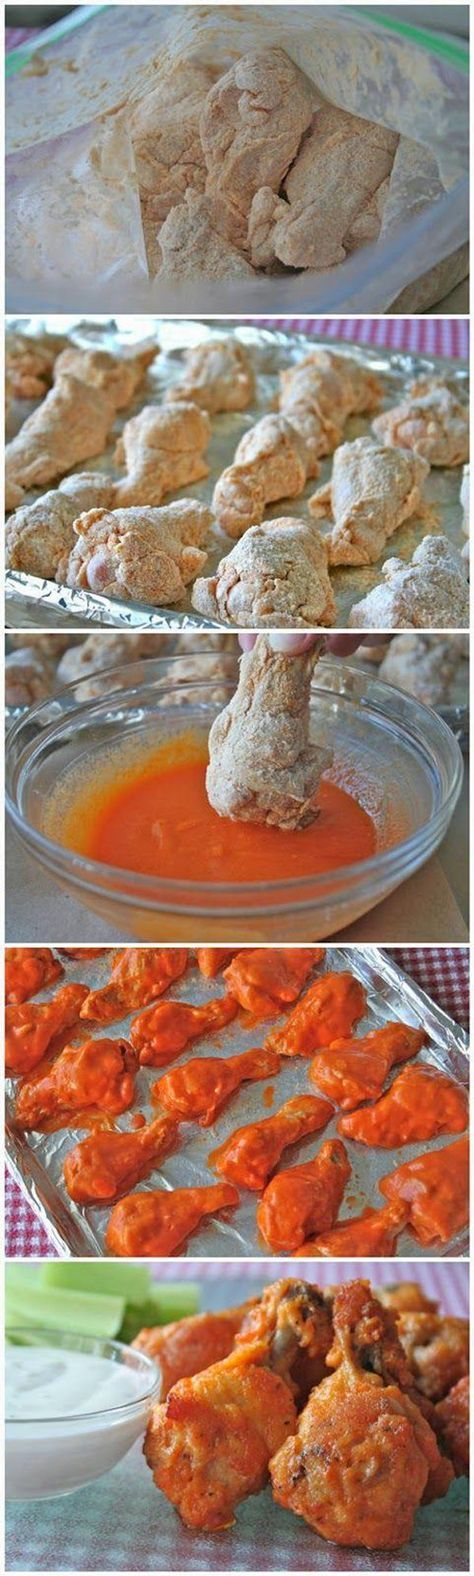 21 chicken wings 1/2 cup flour 1/2 cup Frank's Red Hot Sauce 1/4 tsp paprika 1/2 tsp red cayenne pepper 1/4 tsp salt 1 tsp black pepper 1 1/2 Tbsp butter 1/2 Tbsp minced garlic Instructions In a large bowl, mix together flour, paprika, cayenne pepper, and salt. Toss chicken wings in flour mixture a few at a time. Shake off extra and place on baking sheet. Fridge 45 min. Oven 400, 15-18mins. Stove top mix butter, hot sauce, pep, garlic 2-3mins.